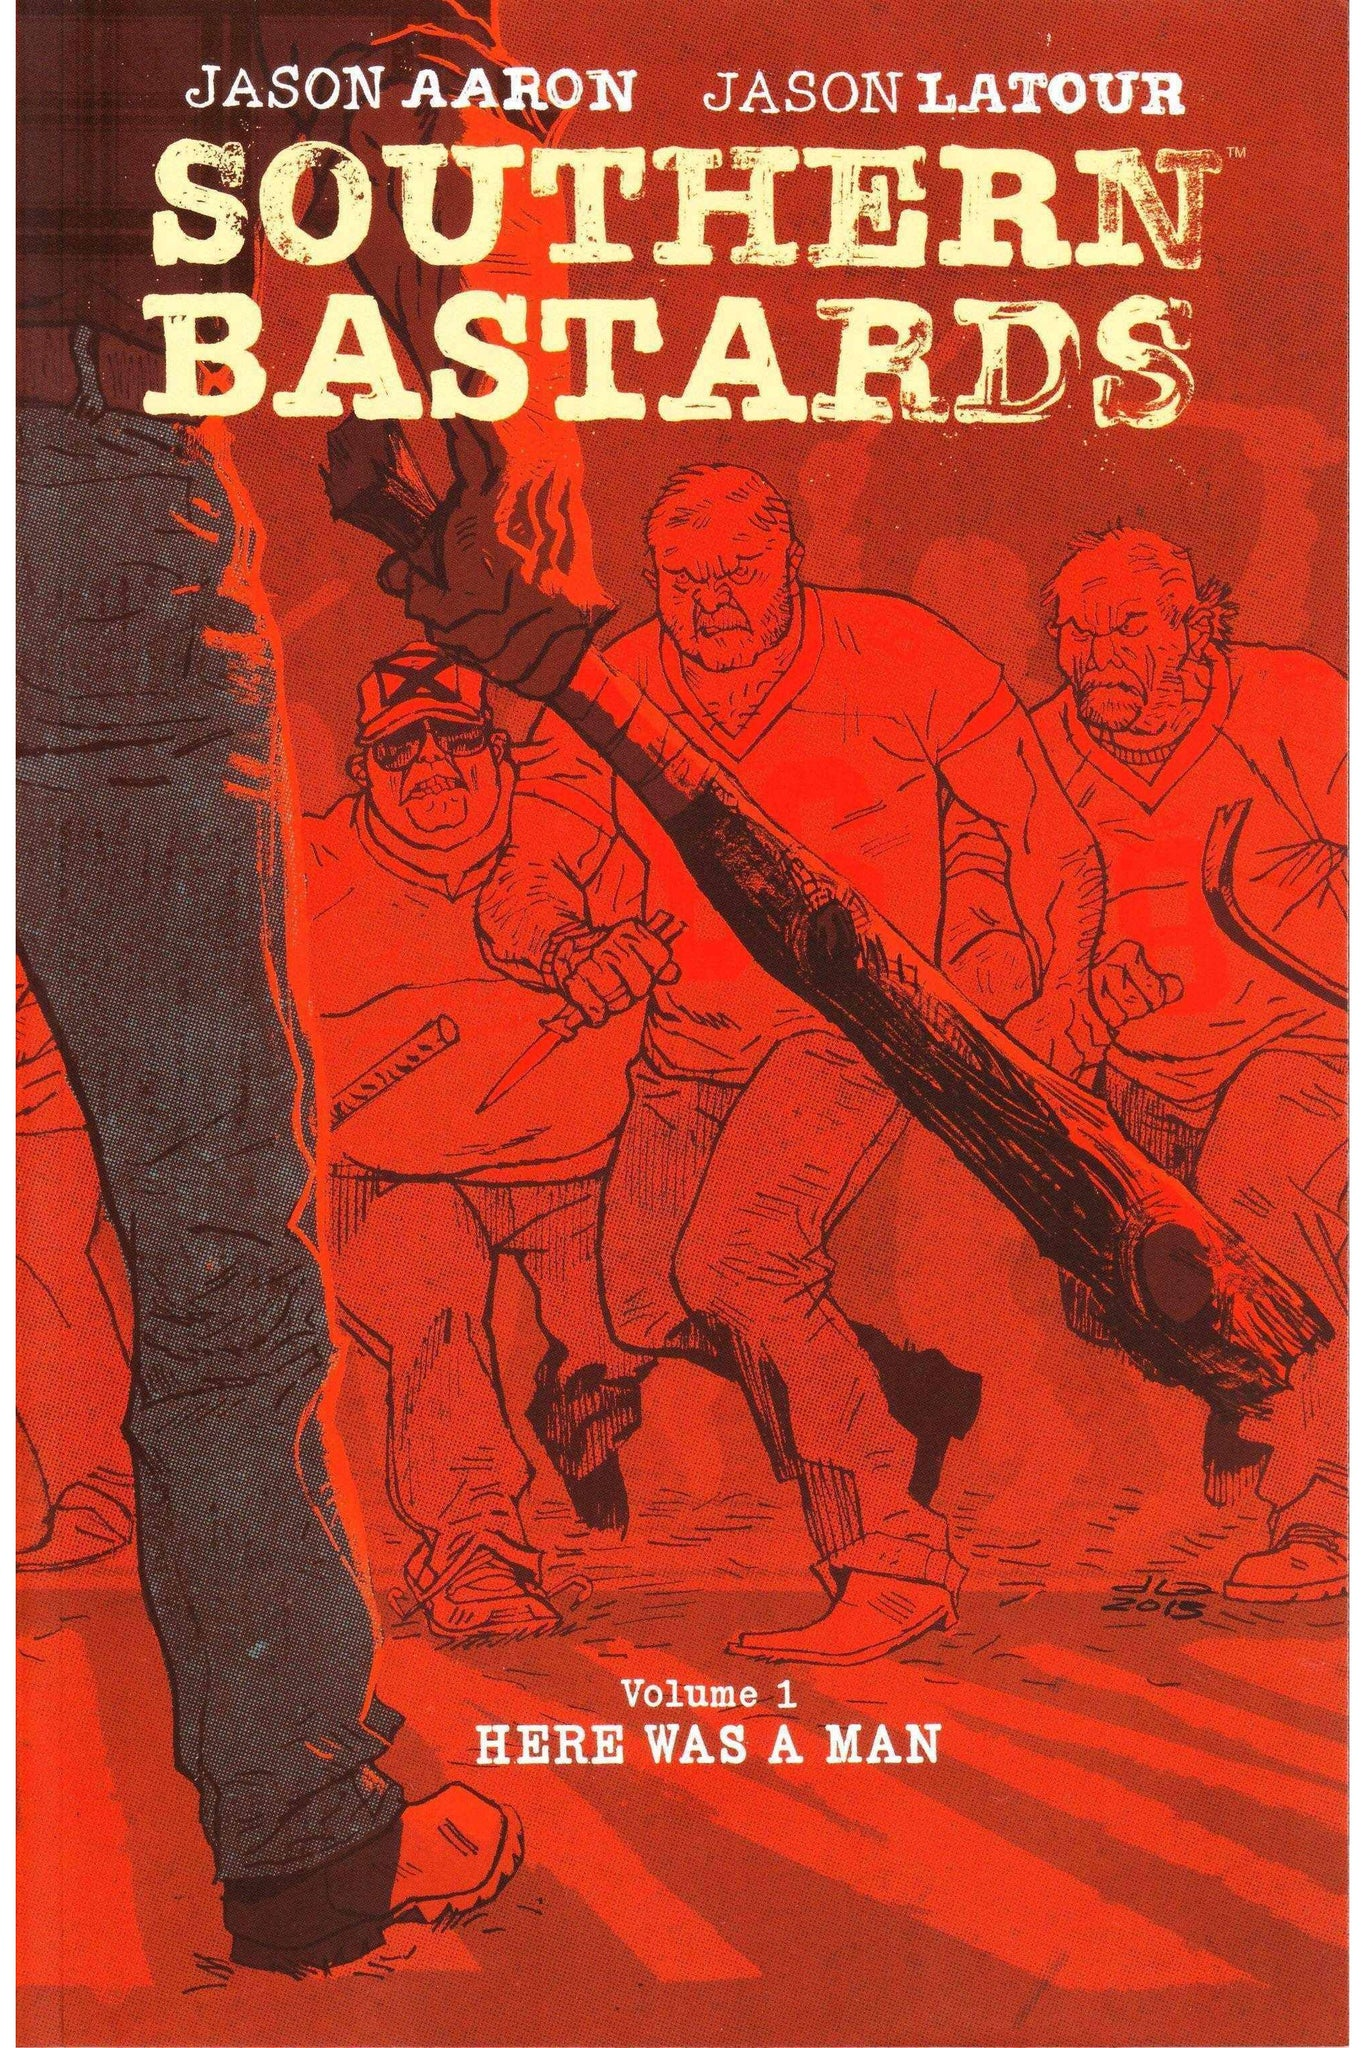 southern-bastards-vol-1-here-was-a-man-diamond-9781632150165-thegamersden.com